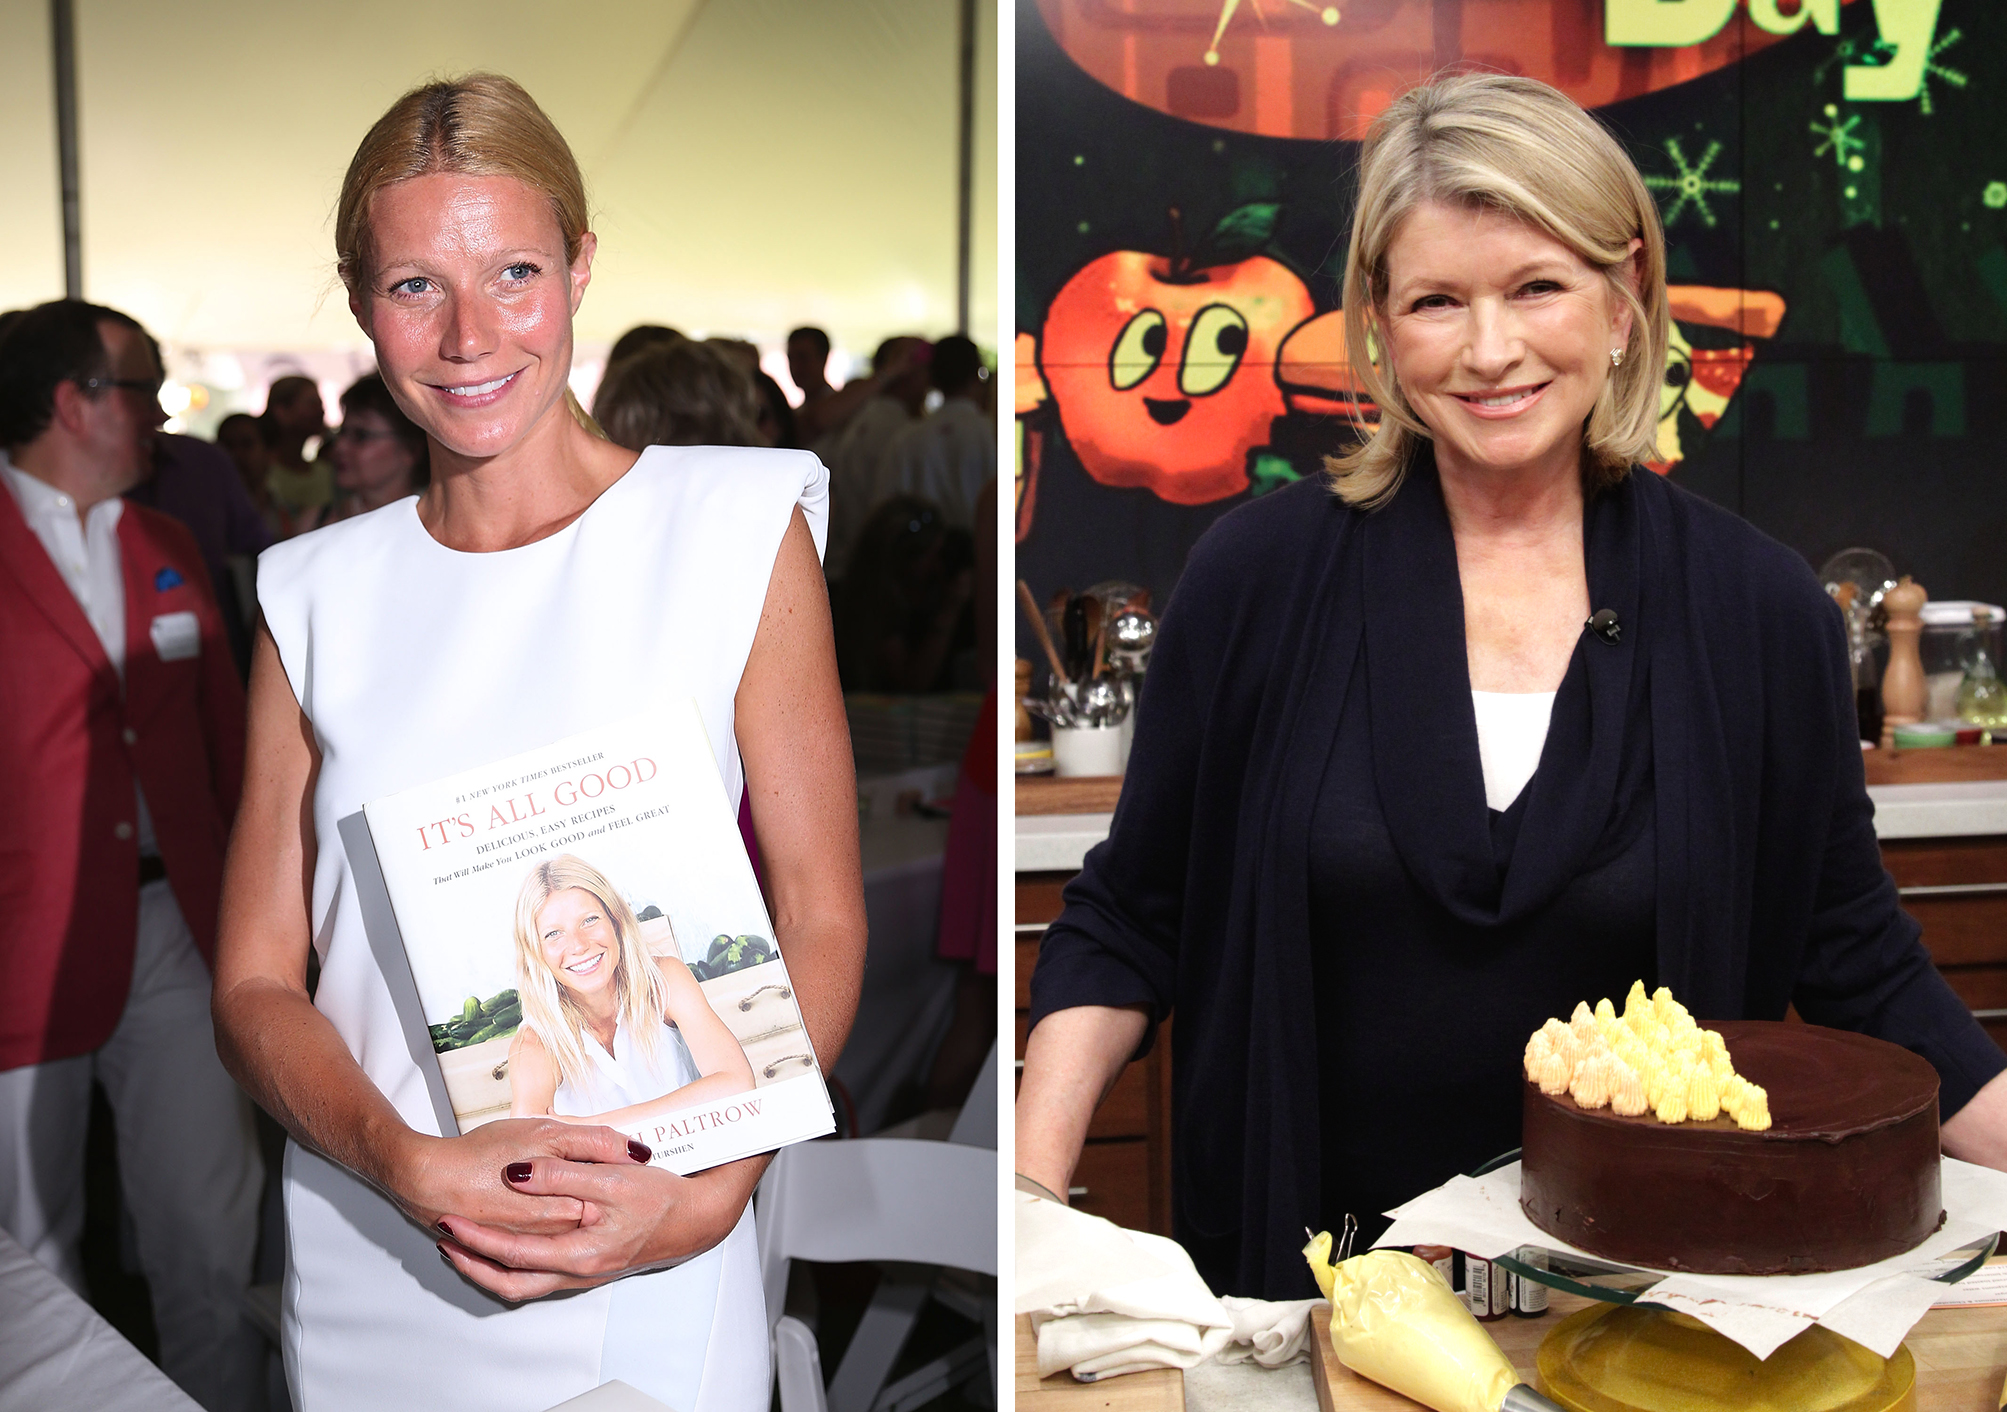 Gwyneth Paltrow shows off her book, while Martha Stewart hits the kitchen. (Getty)